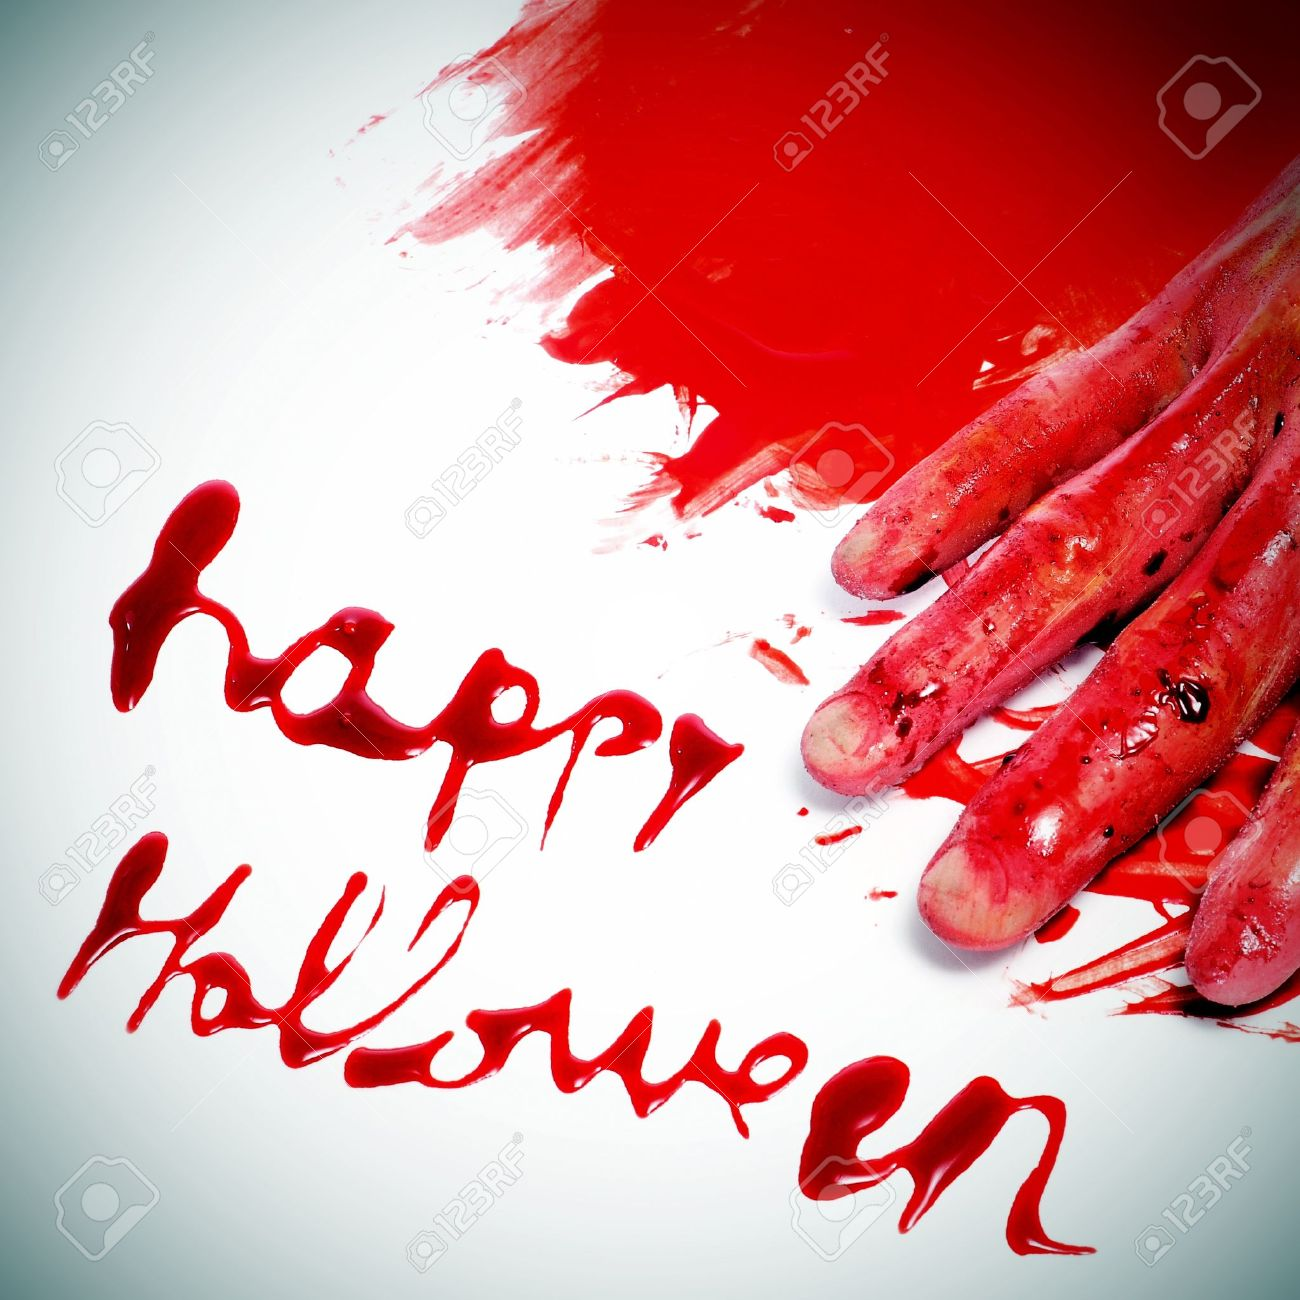 Sentence Happy Halloween Written With Blood And A Scary And Bloody ...